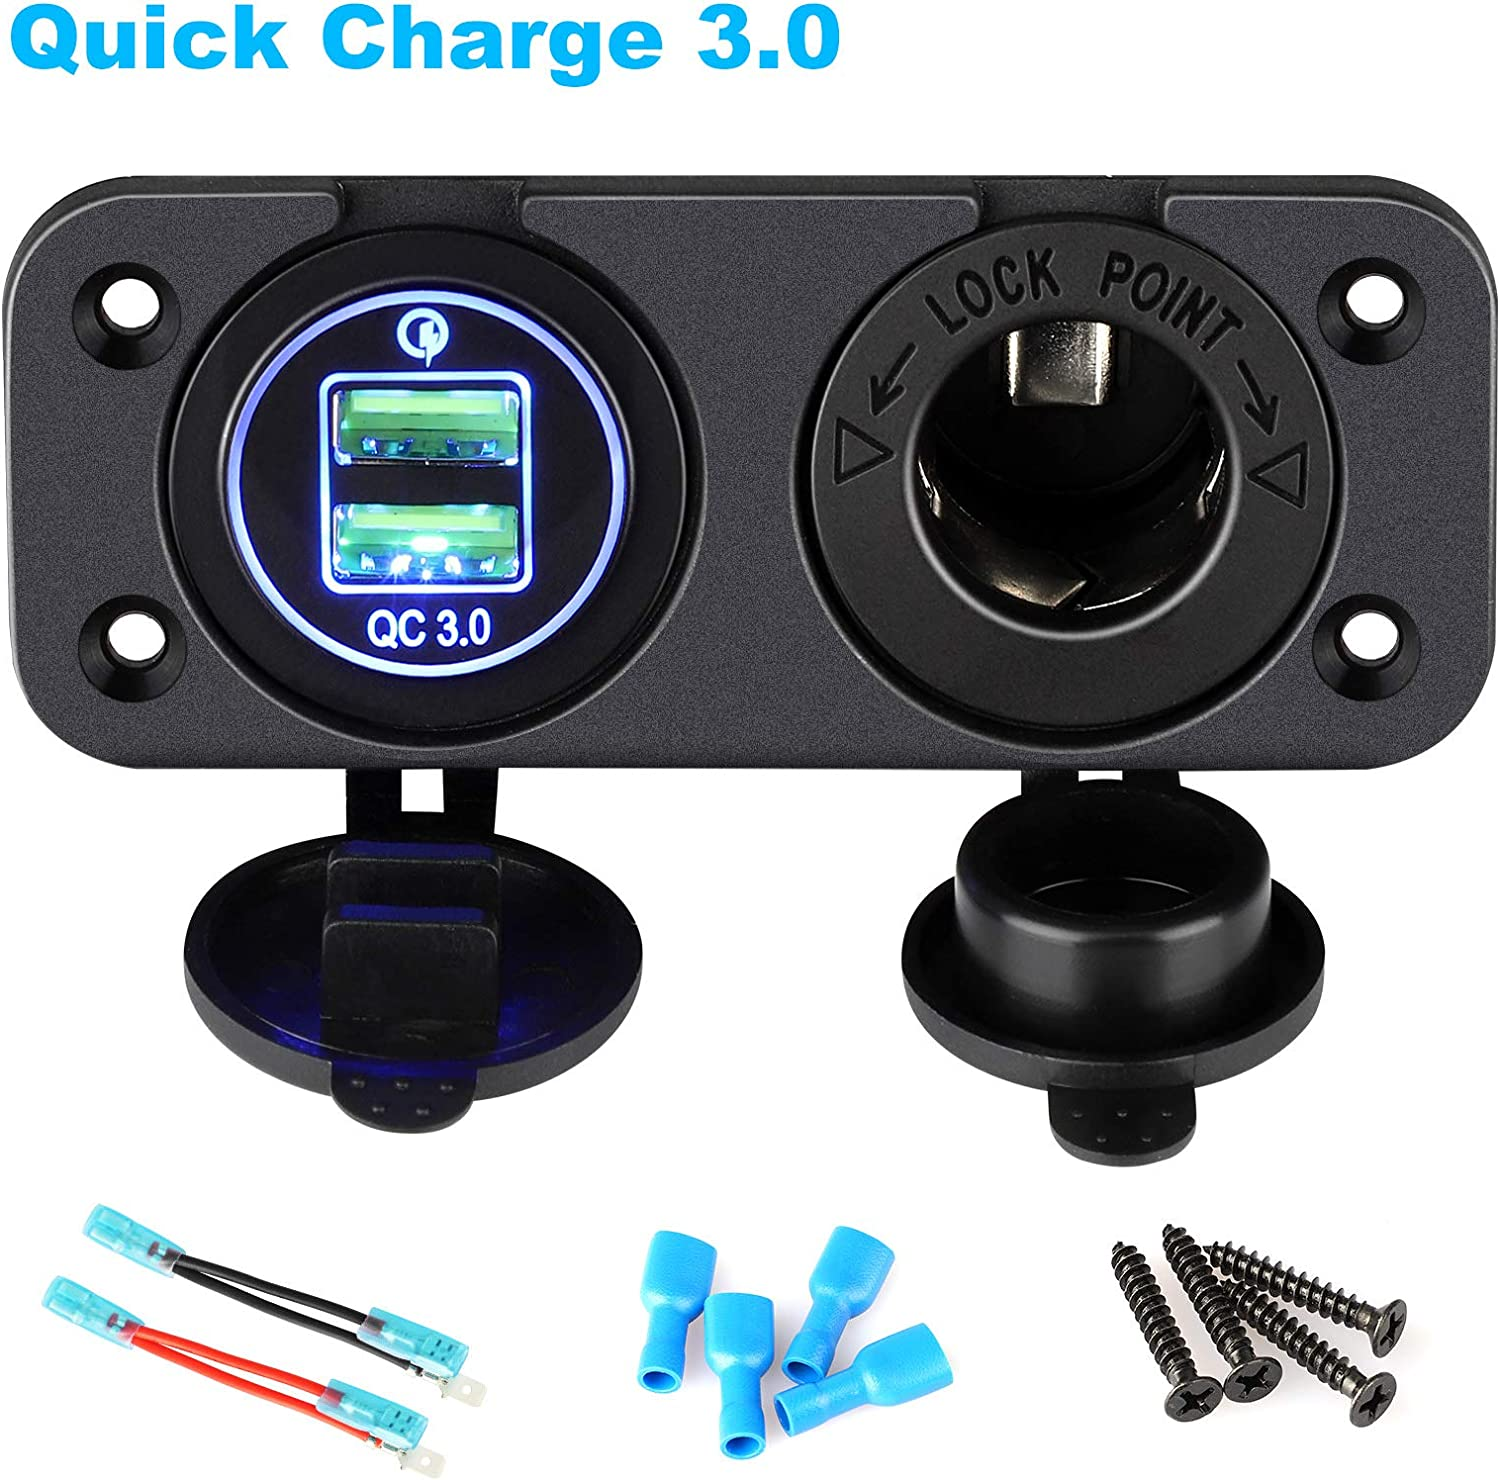 Quick Charge 3.0 Cigarette Lighter Outlet Splitter, 12V Charger Waterproof Power Socket Adapter Control panel, Dual USB Ports with Blue LED & Cigarette Lighter Socket, for 12V/24V Car Boat Marine RV